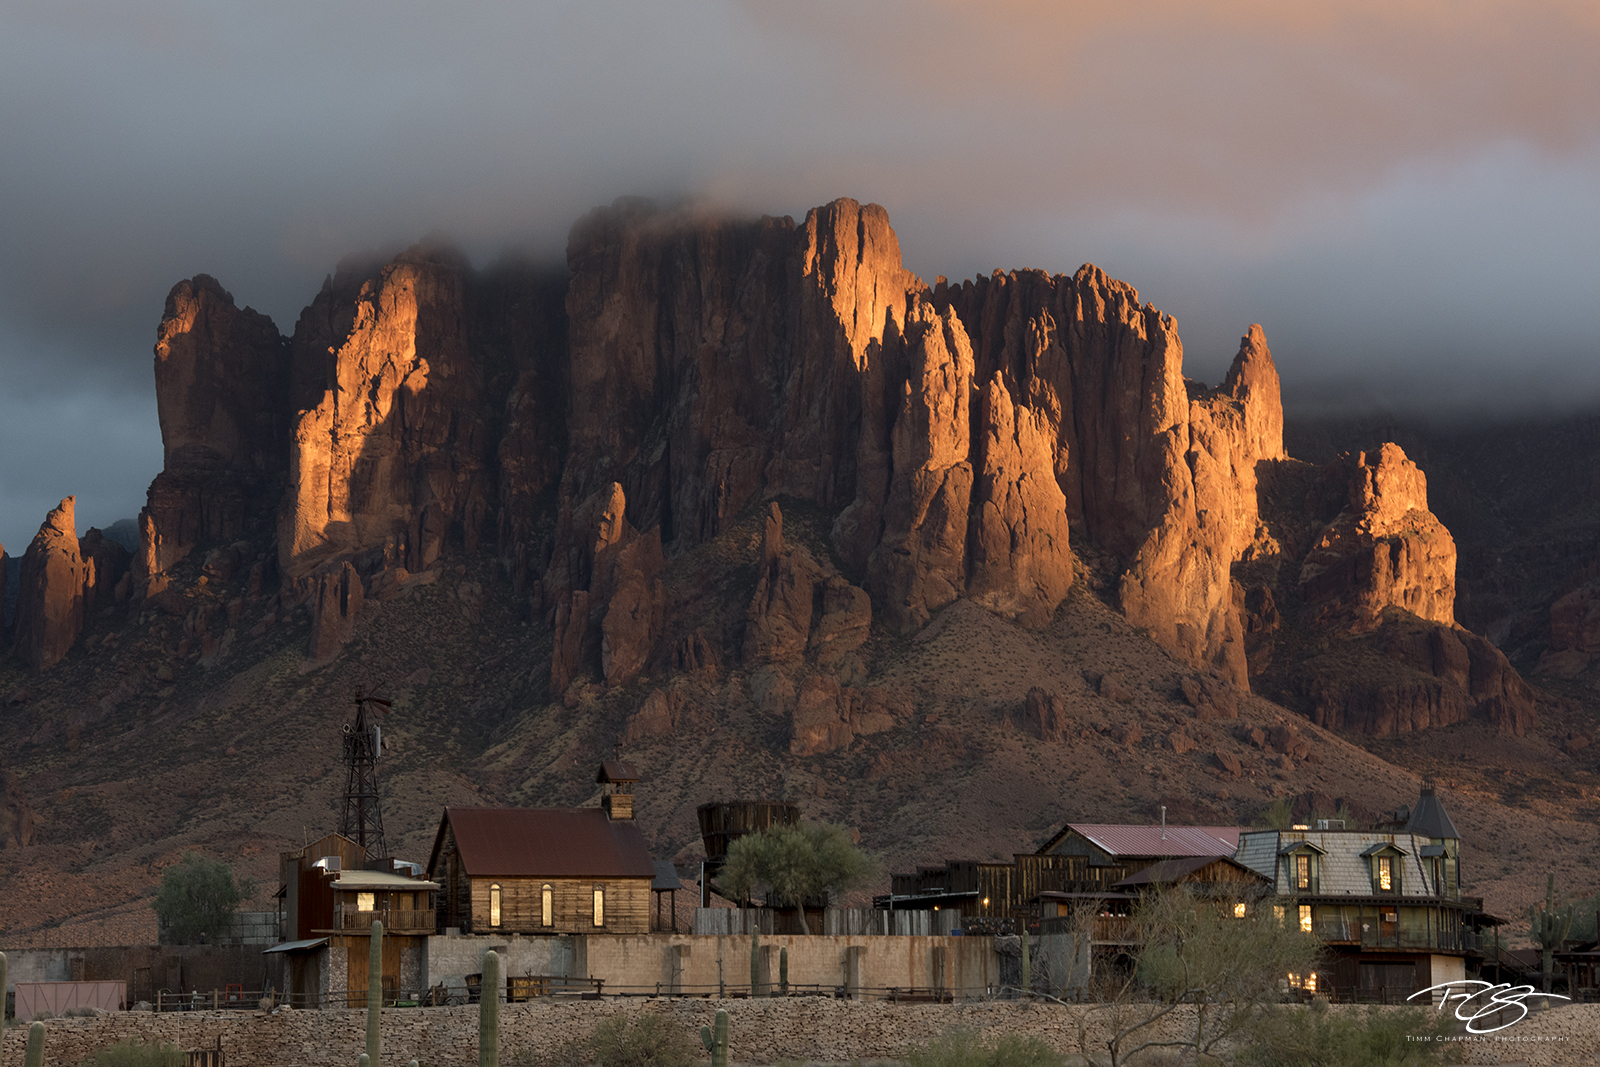 Superstition Mountain glows with the last liight of day as it watches over the old western town of Goldfield